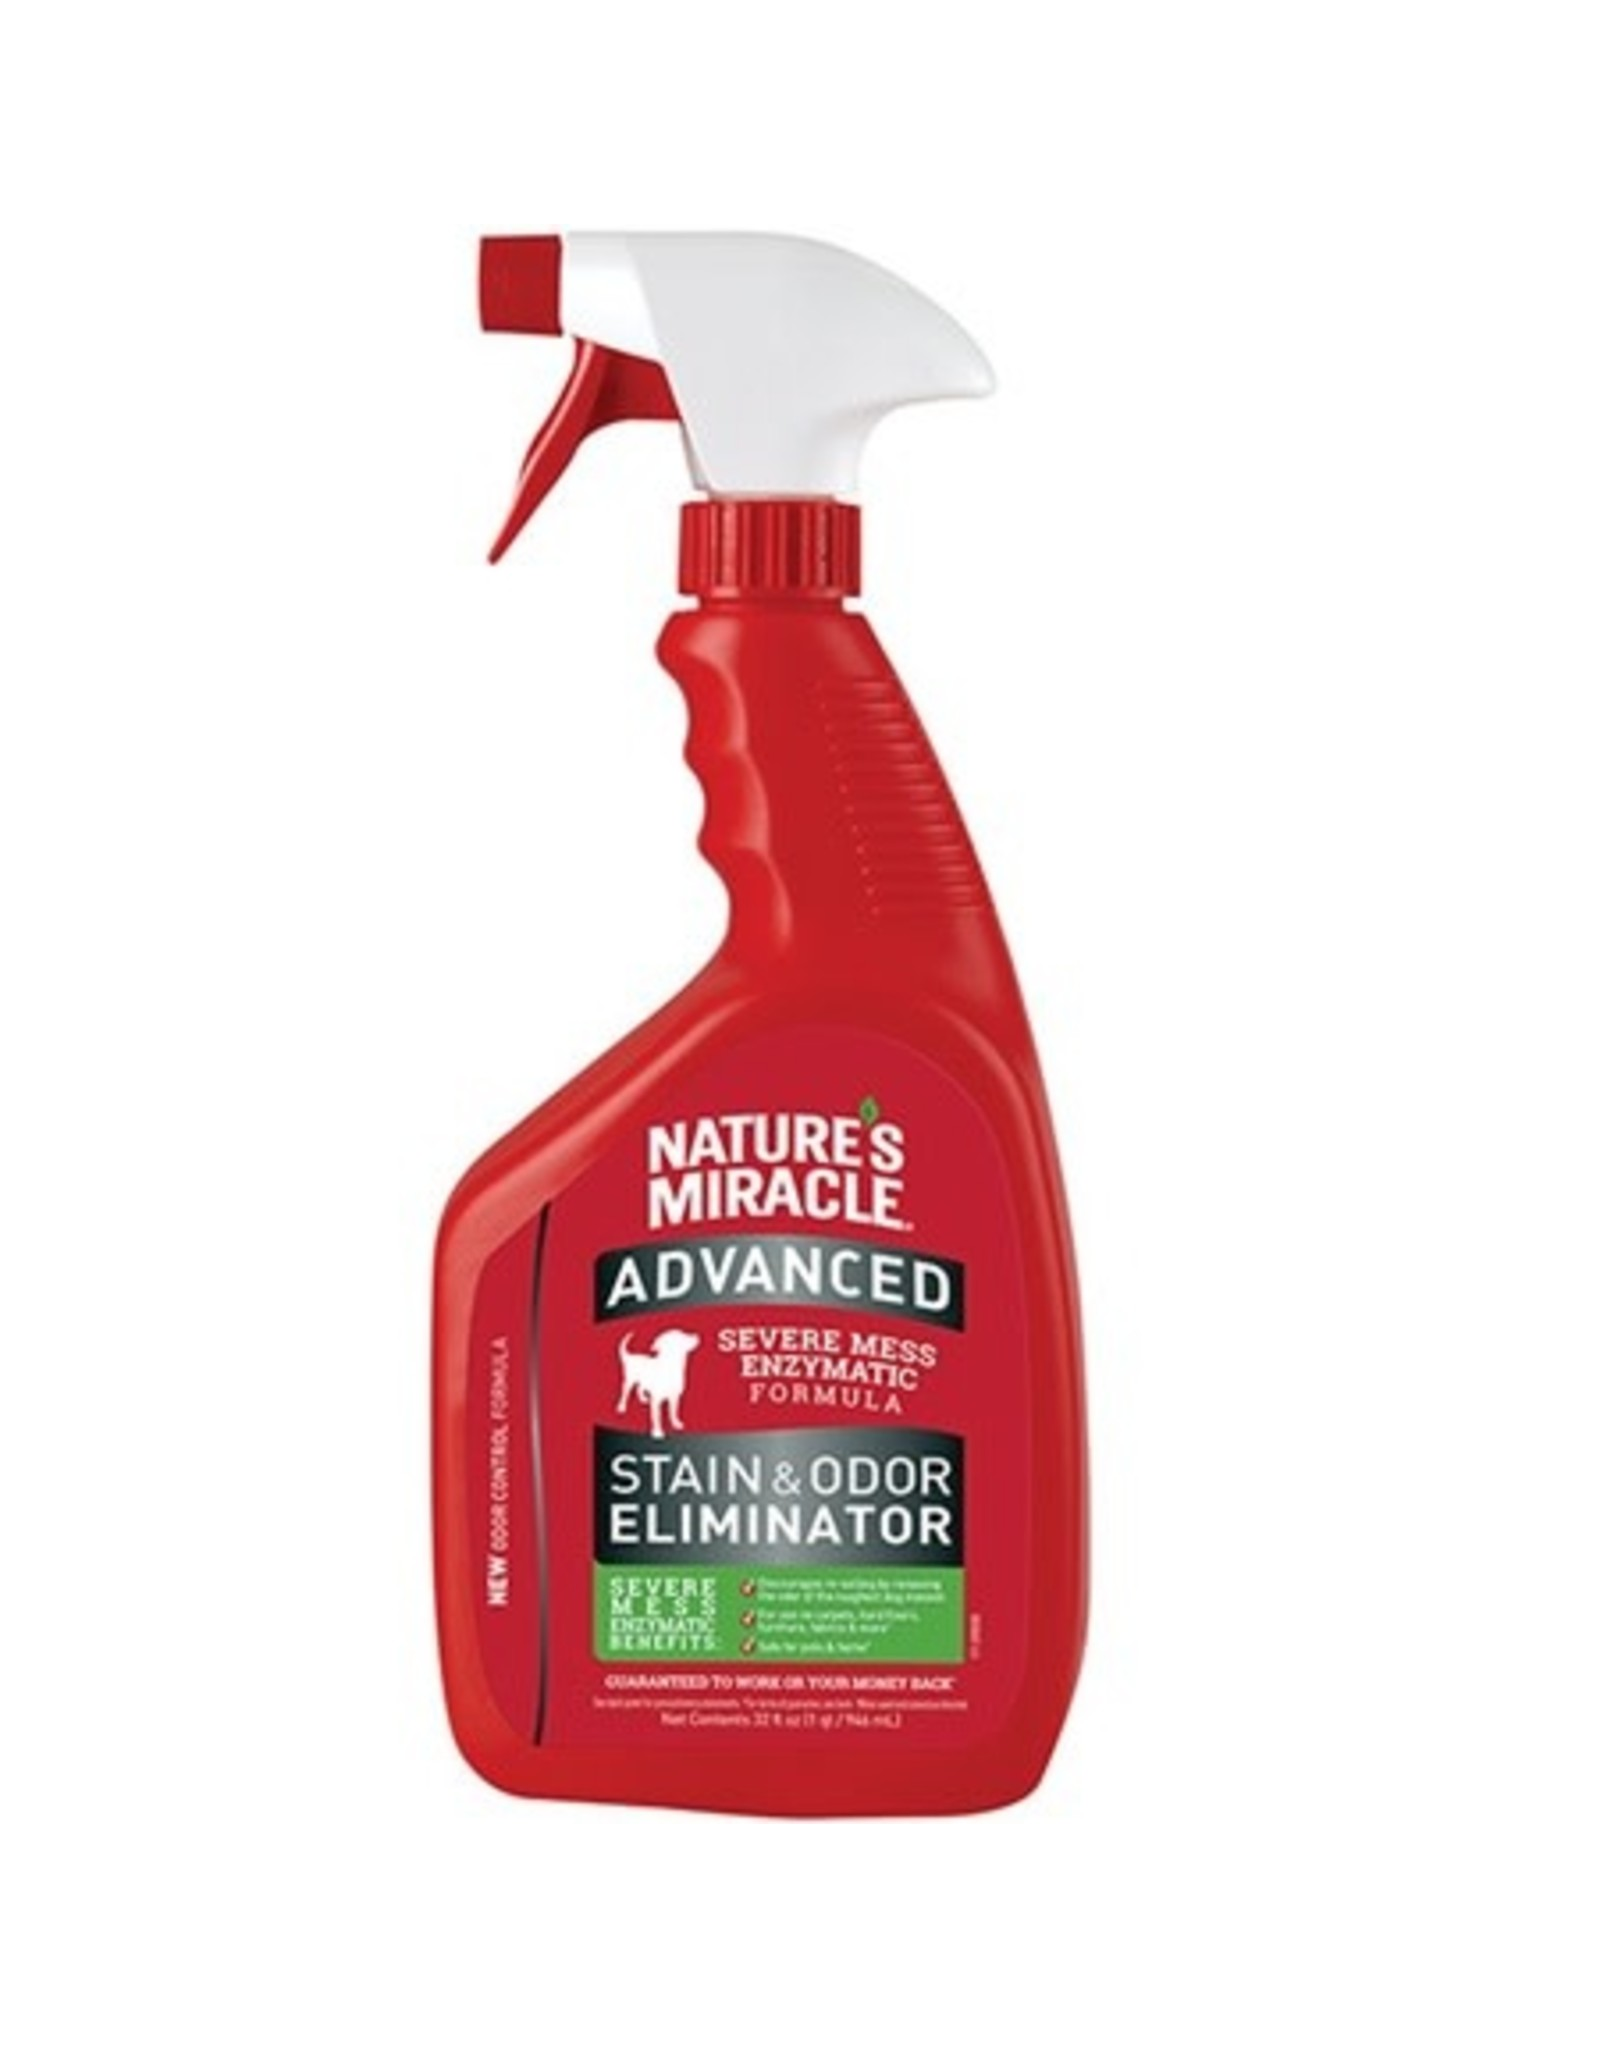 natures miracle Nature's Miracle - Advanced Stain & Odor Remover 32oz